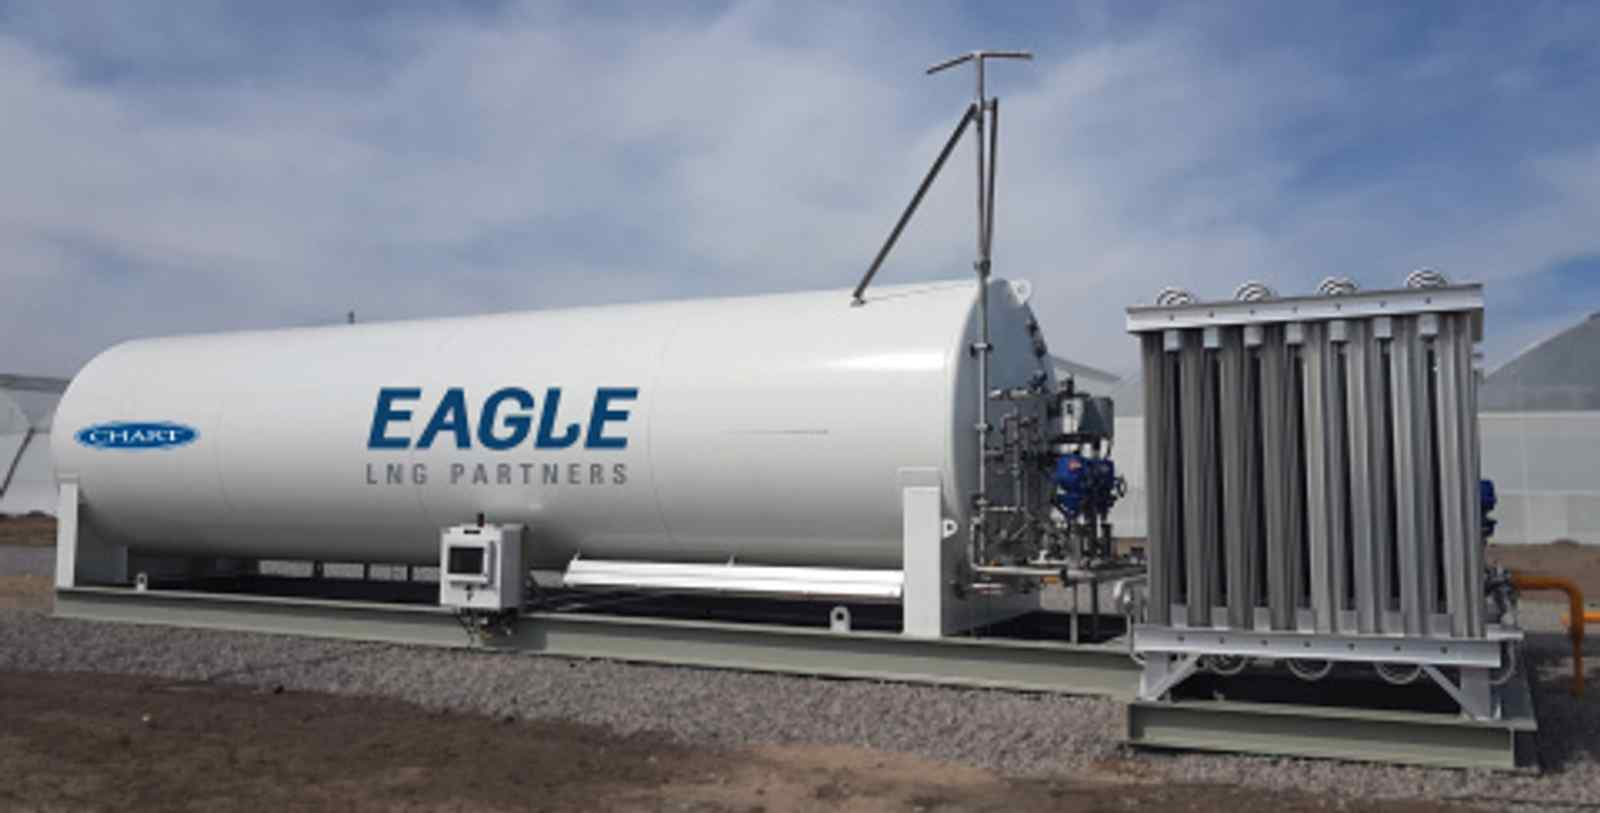 Eagle LNG Signs Long-Term Agreement to Provide Turn-Key U.S. Natural Gas Solution for Barbuda Ocean